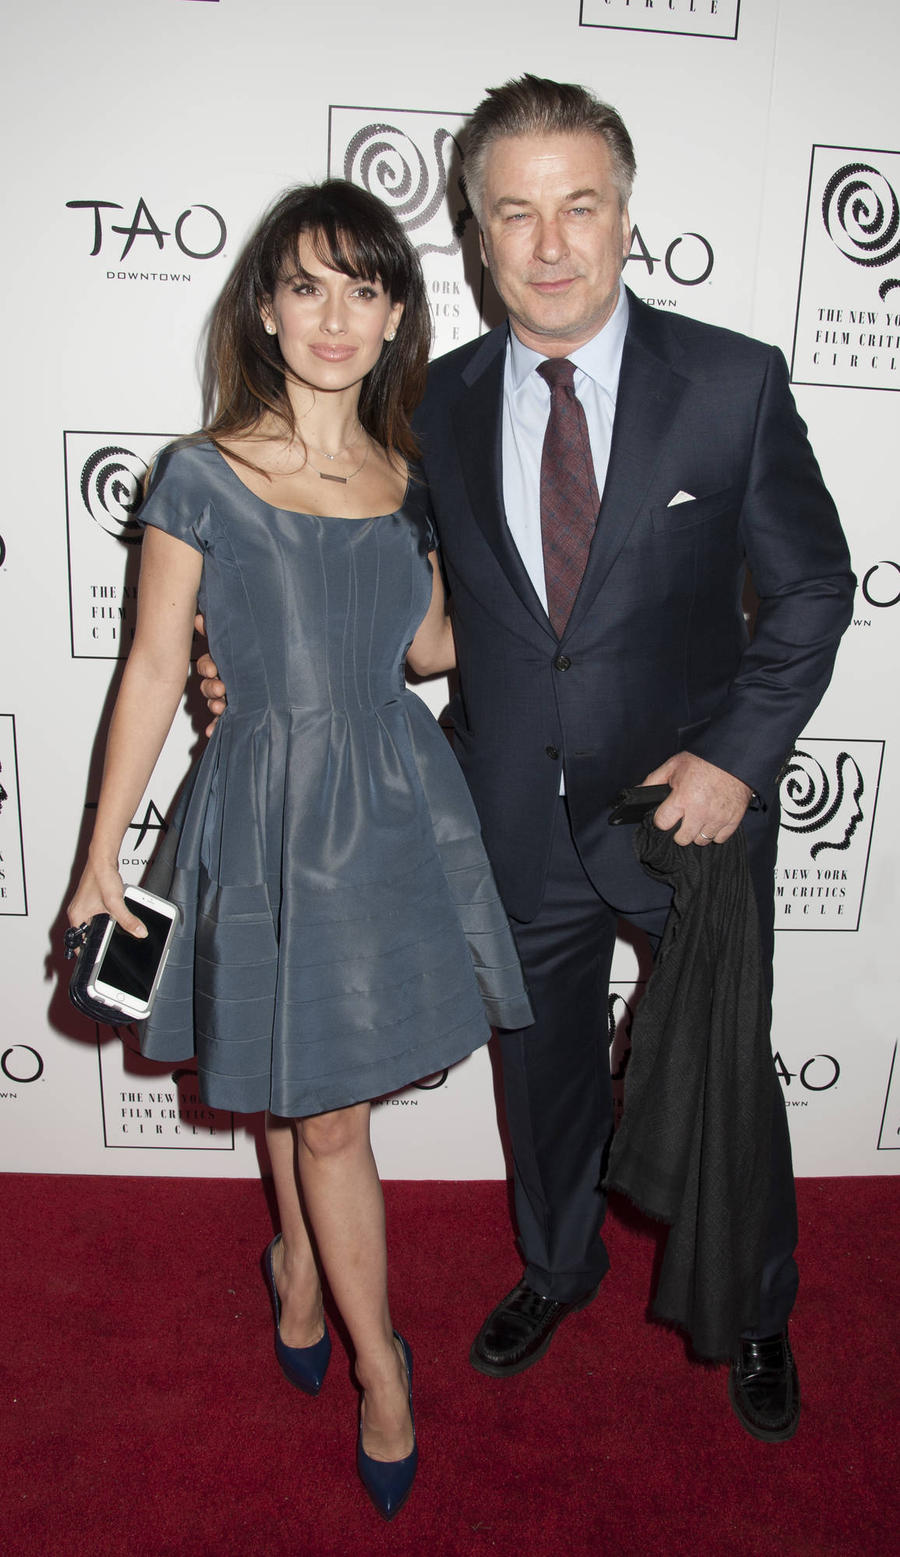 Alec Baldwin Expecting Third Child With Wife Hilaria